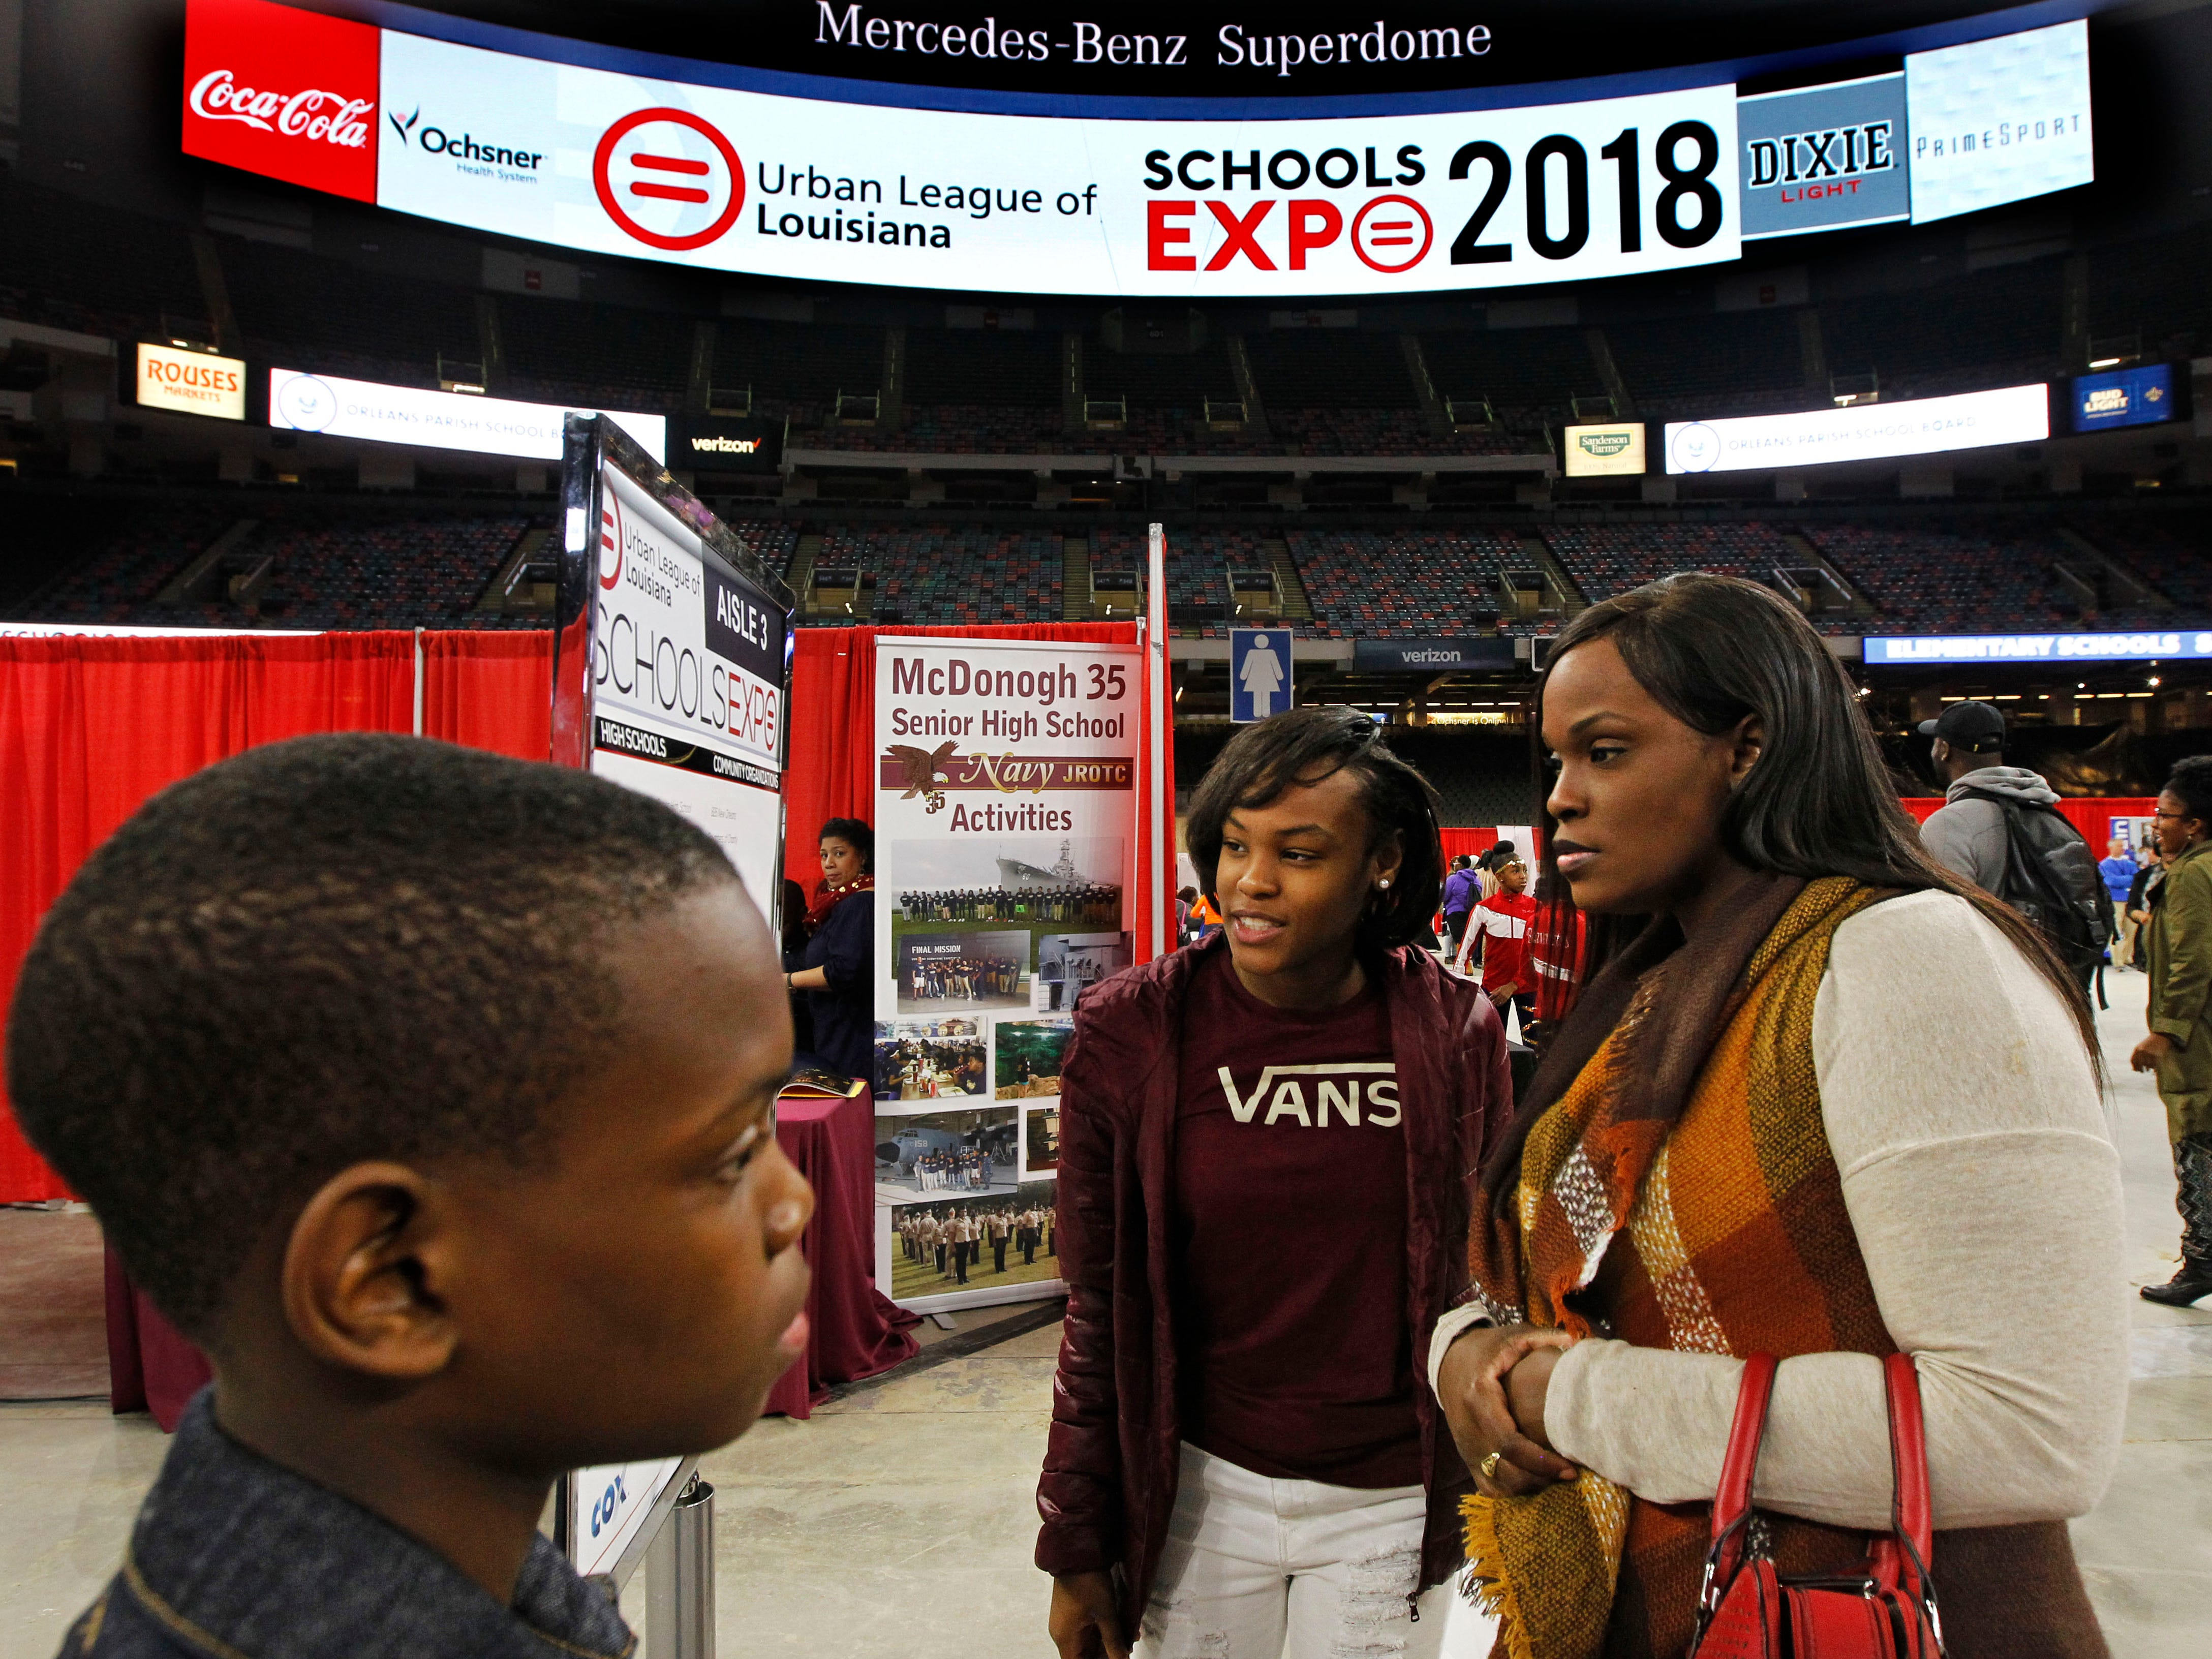 Tamyra Morris (right) looks at the schedule for the Urban League of Schools Expo with her daughter, Takilah Haymond and son  Dan Stevenson at the Mercedes-Benz Superdome in New Orleans. EdNavigator's Gary Briggs suggested Morris attend the event.